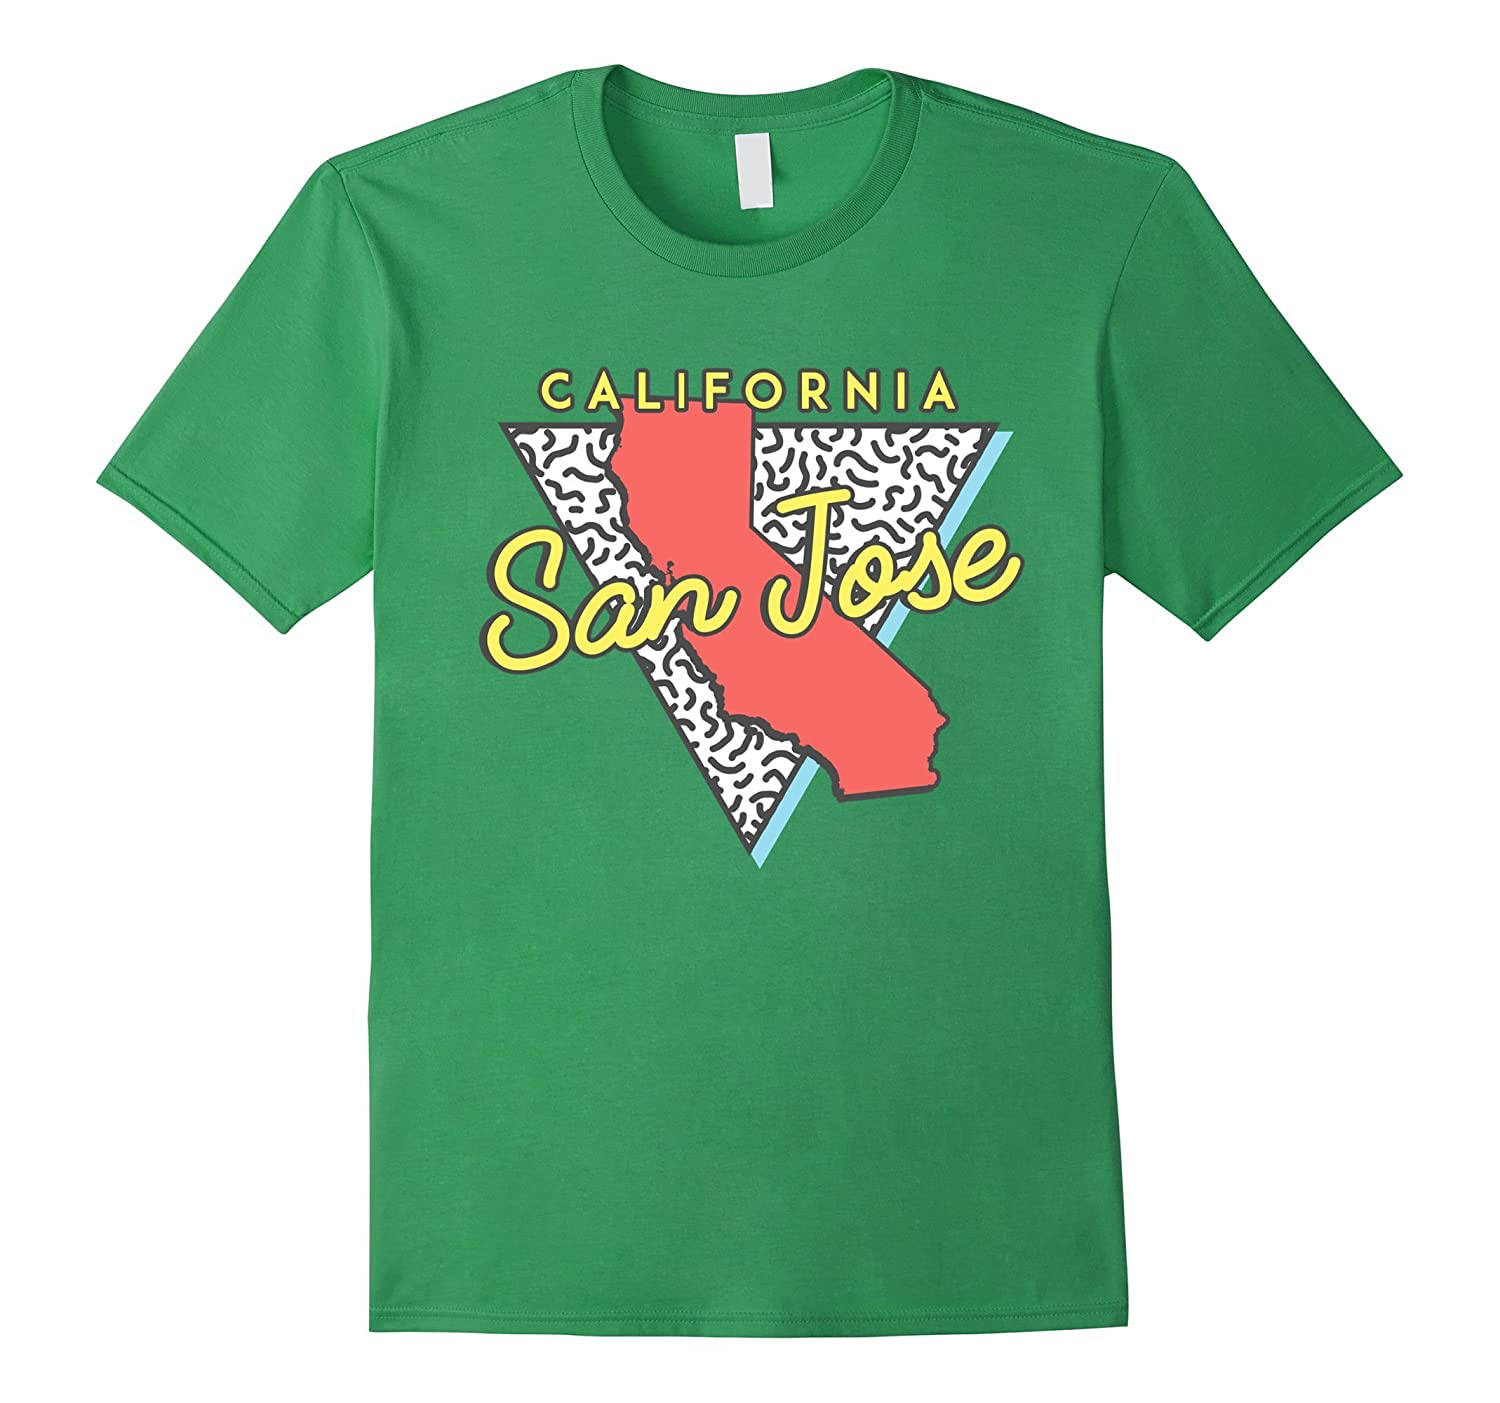 san jose california t shirt retro design ca souvenirs vaci vaciuk. Black Bedroom Furniture Sets. Home Design Ideas